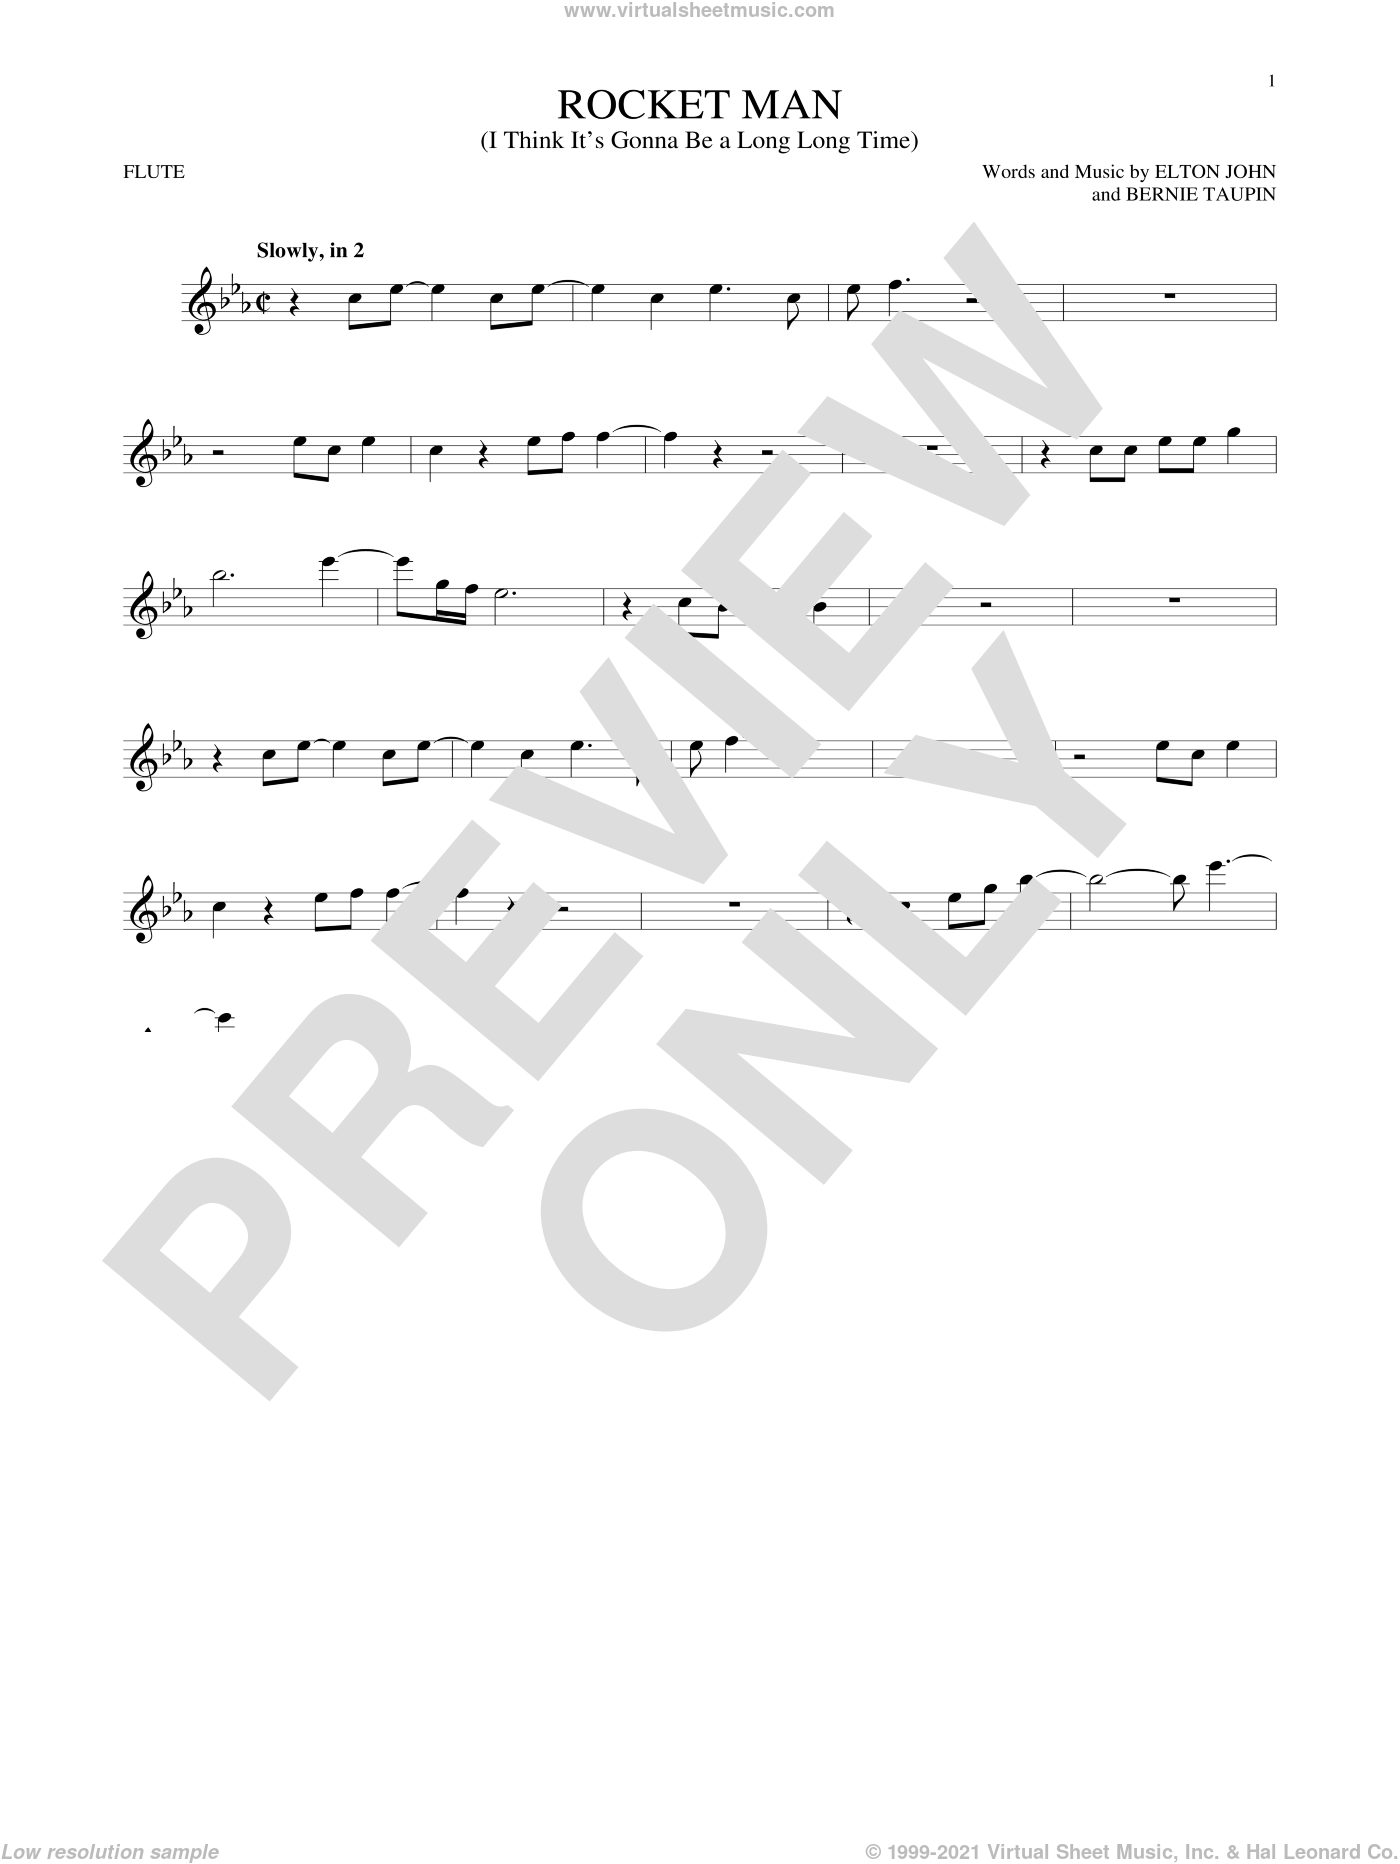 Rocket Man (I Think It's Gonna Be A Long Long Time) sheet music for flute solo by Elton John and Bernie Taupin, intermediate skill level